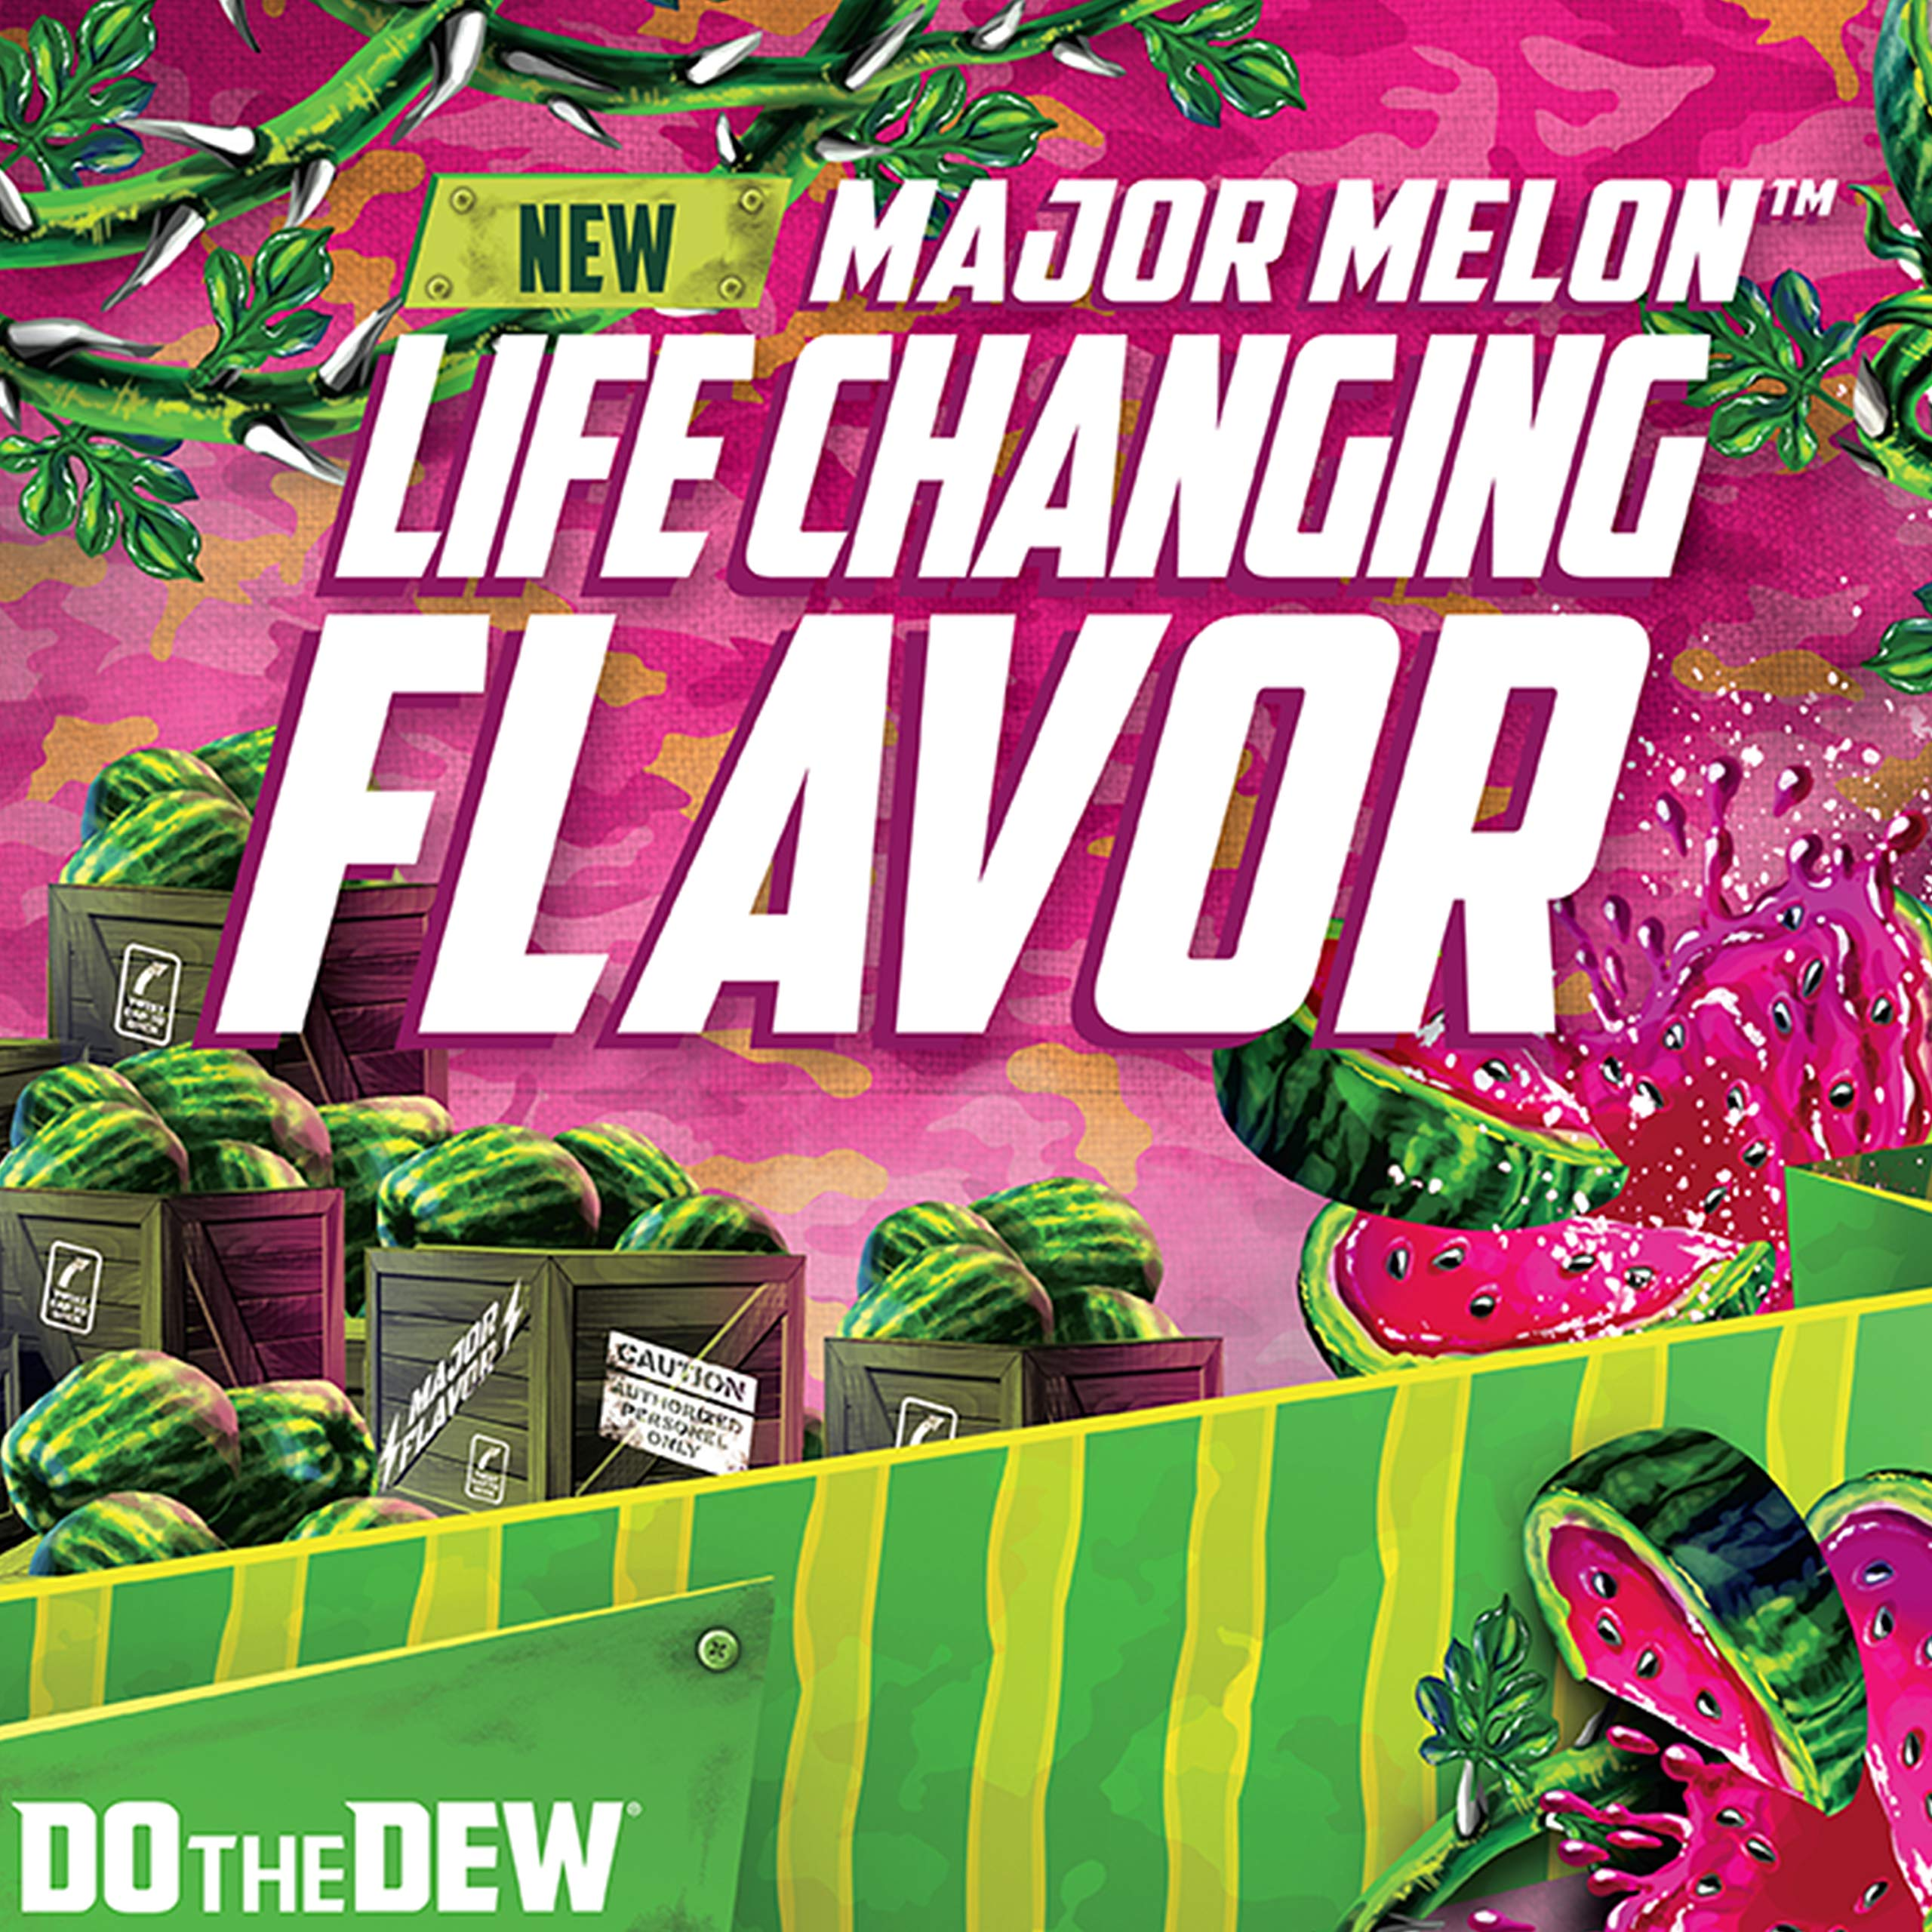 Mountain Dew, MTN Original and Major Melon Variety Pack 12oz Cans Pack, Watermelon, 18 Count